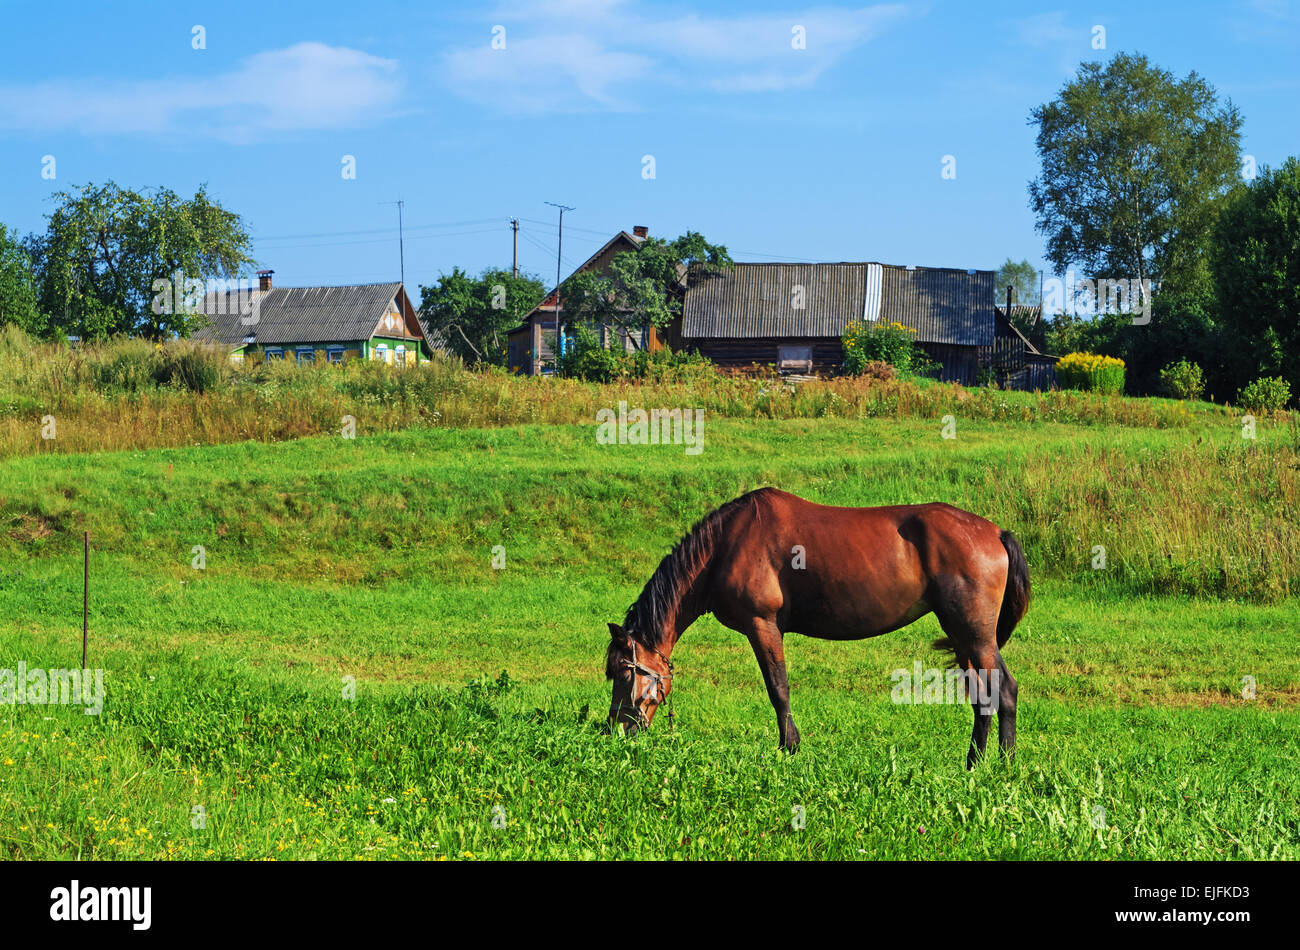 Rural landscape. Brown horse on pasture. Stock Photo